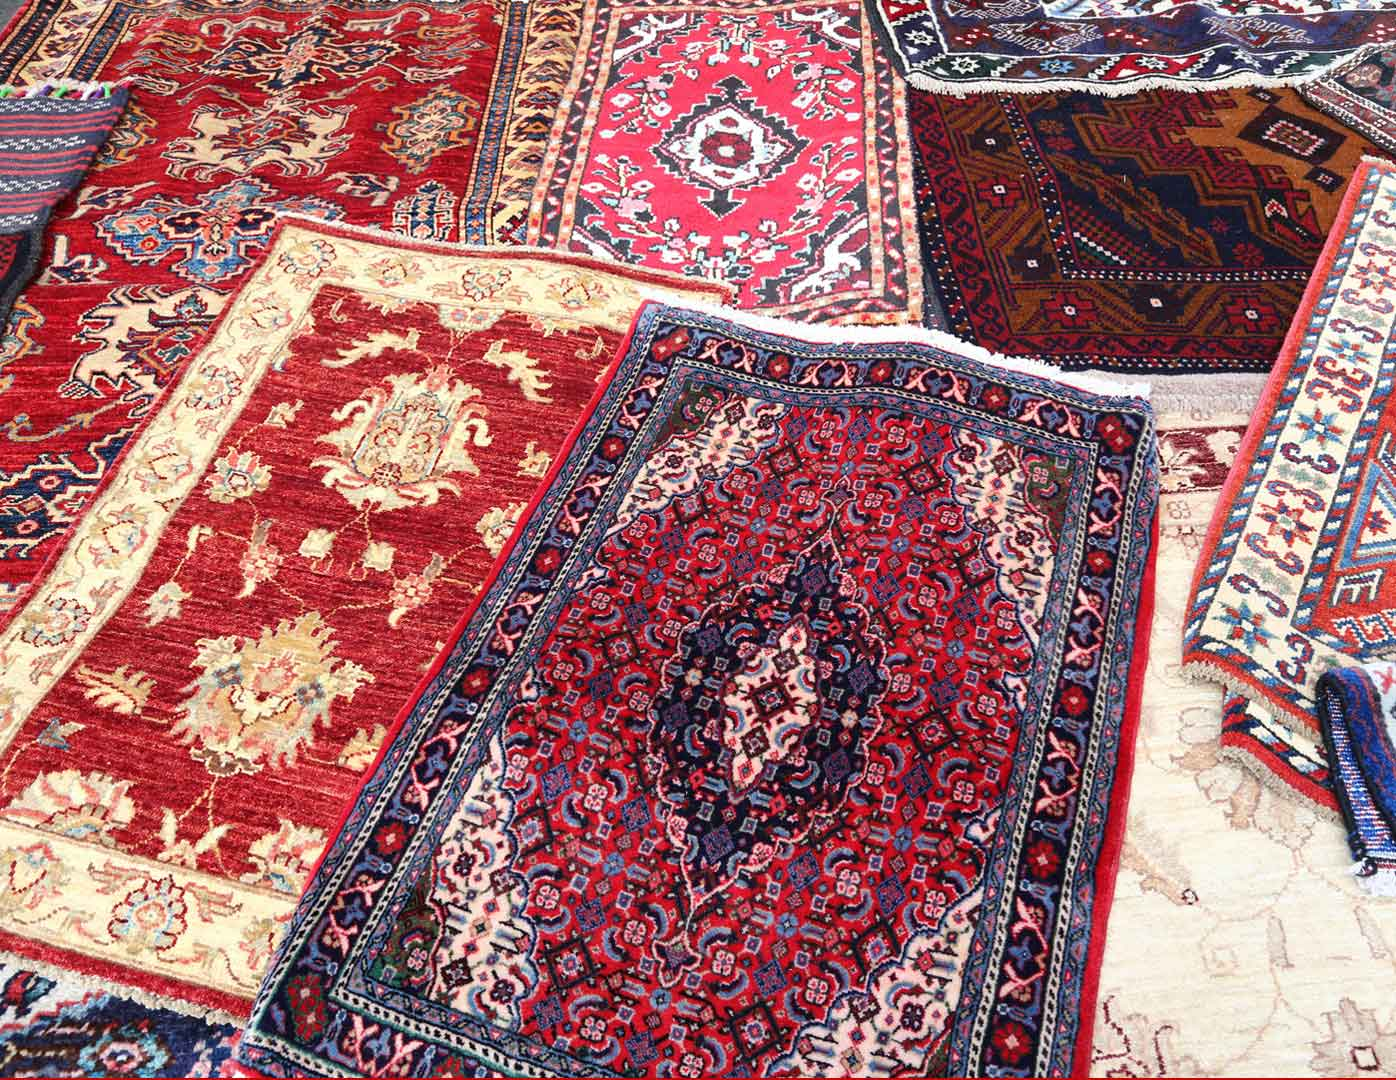 Rugs, Persian, Oriental, Turkish, Modern all professionally cleaned by ServiceMaster Clean Devon